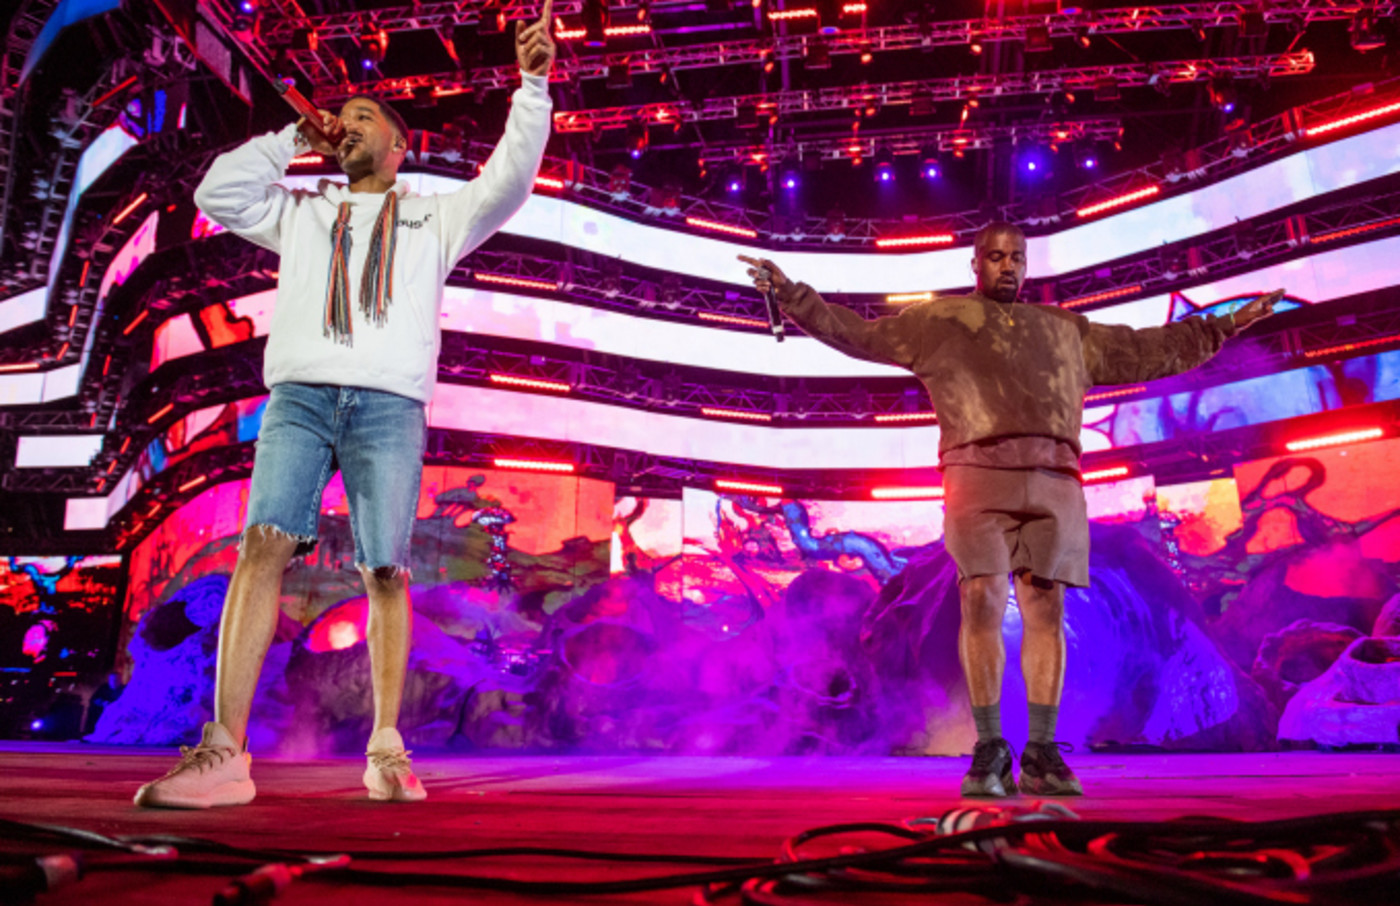 Kid Cudi and Kanye West perform during 2019 Coachella Valley Music And Arts Festival